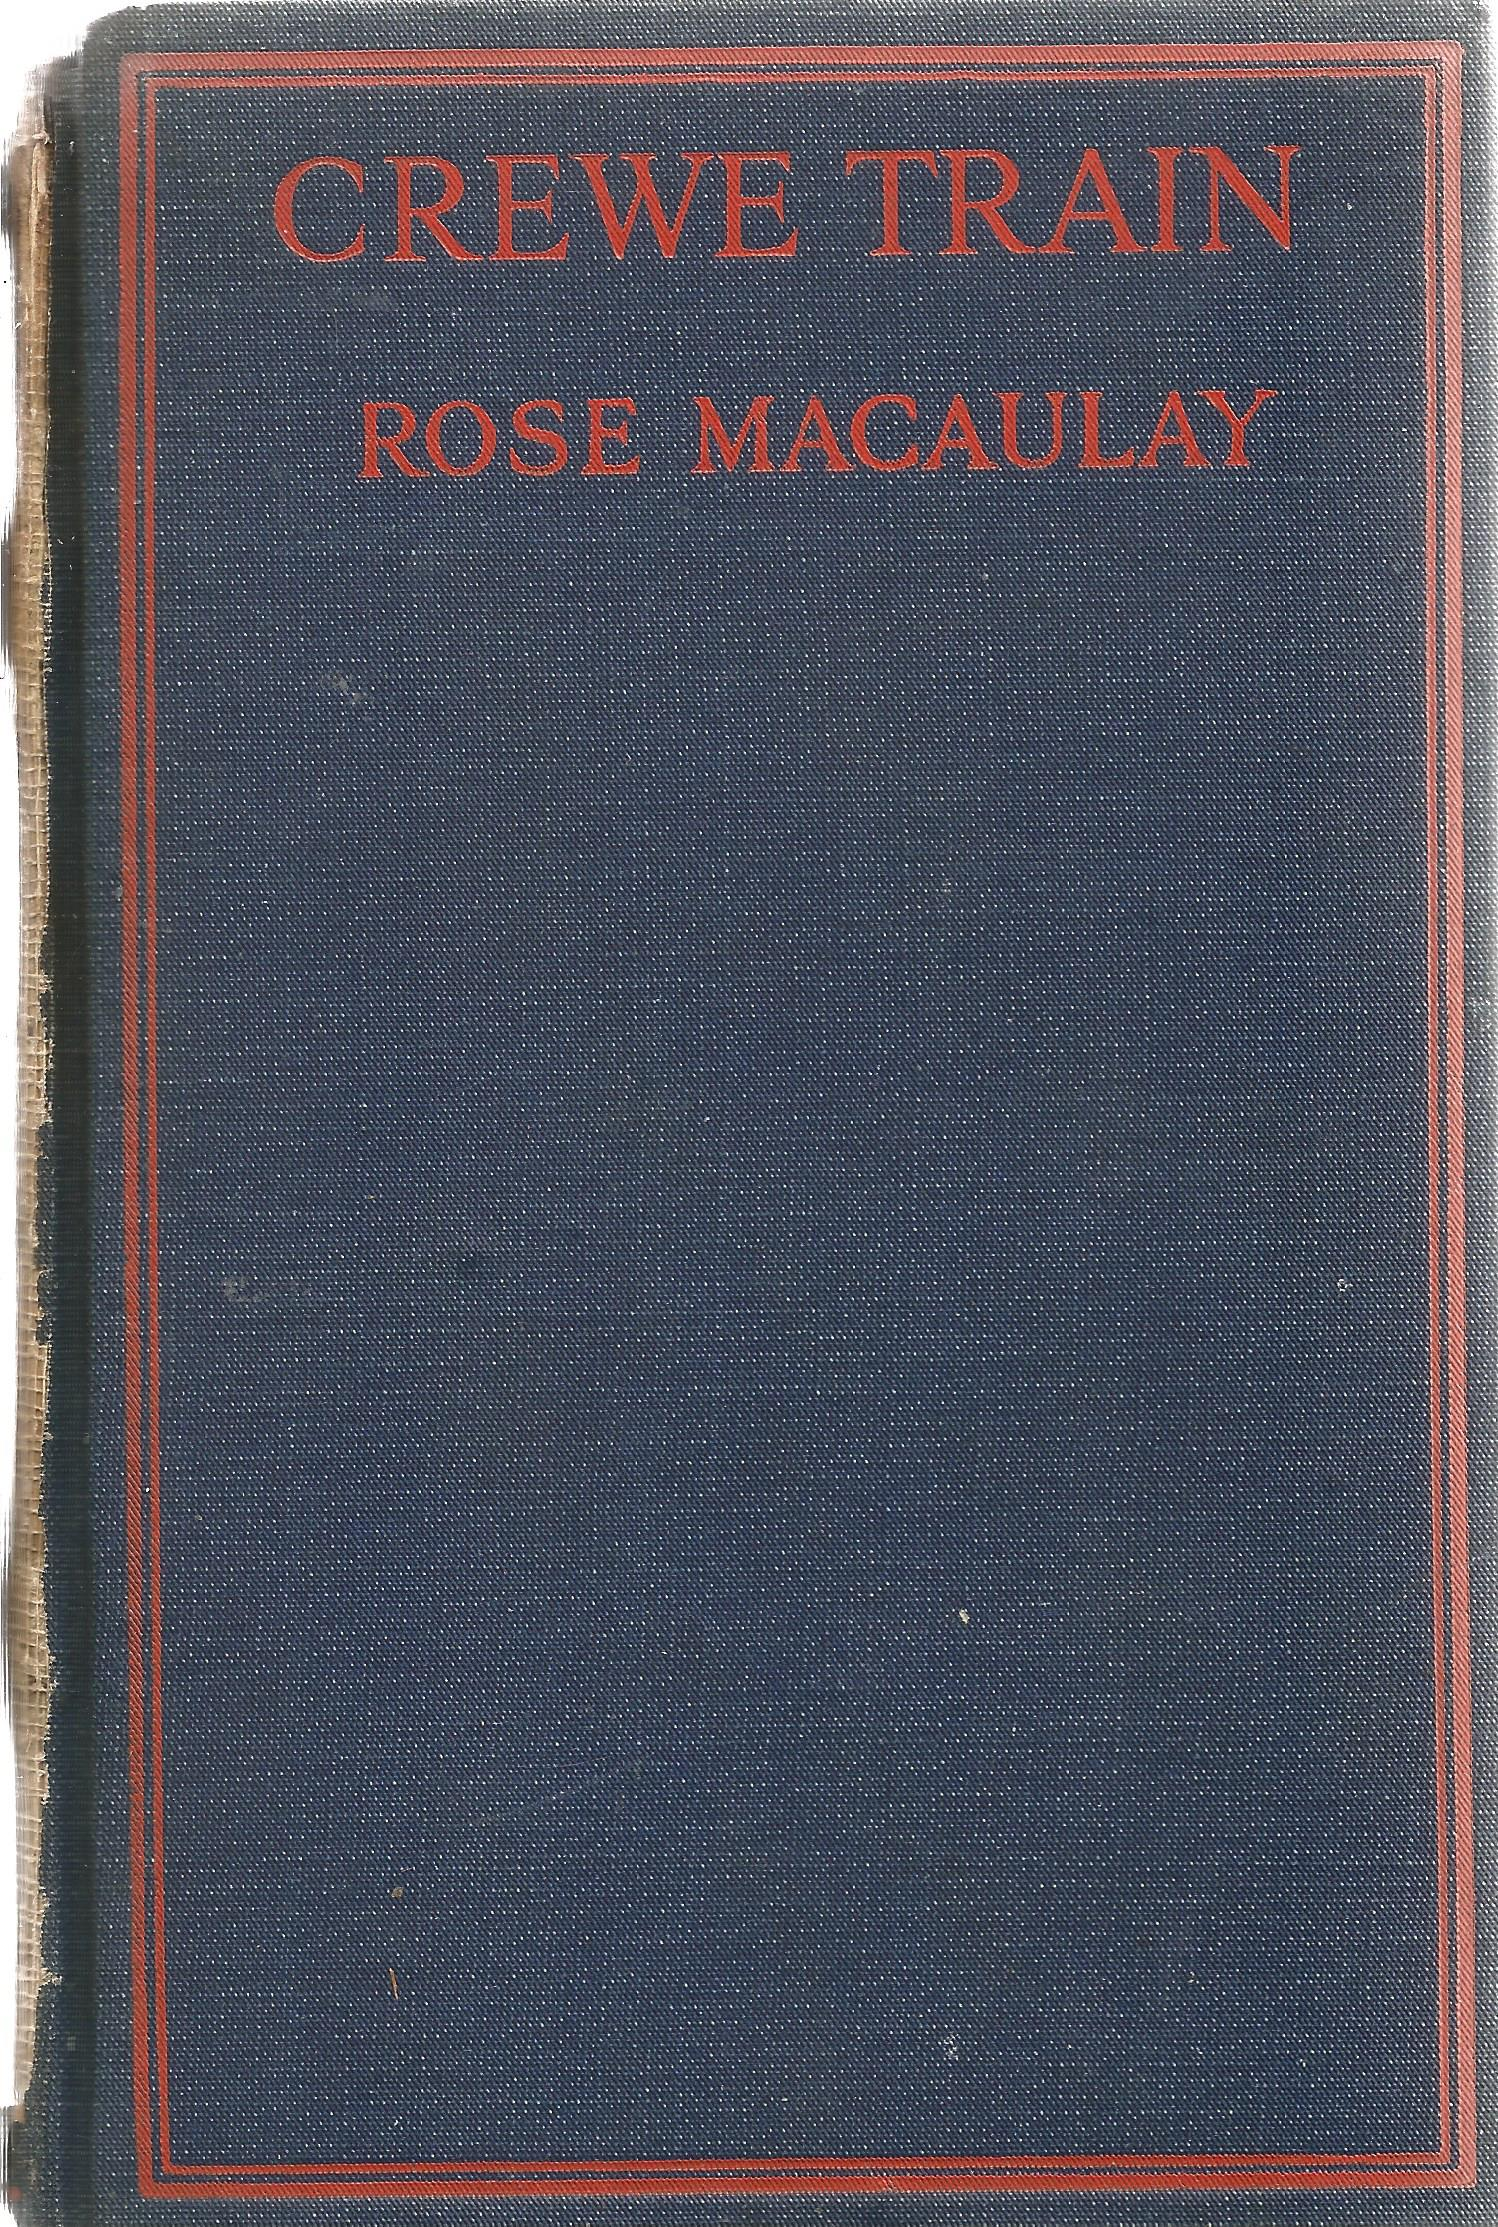 Signed Hardback Book Crewe Train by Rose Macaulay signed by the Author on the first page First